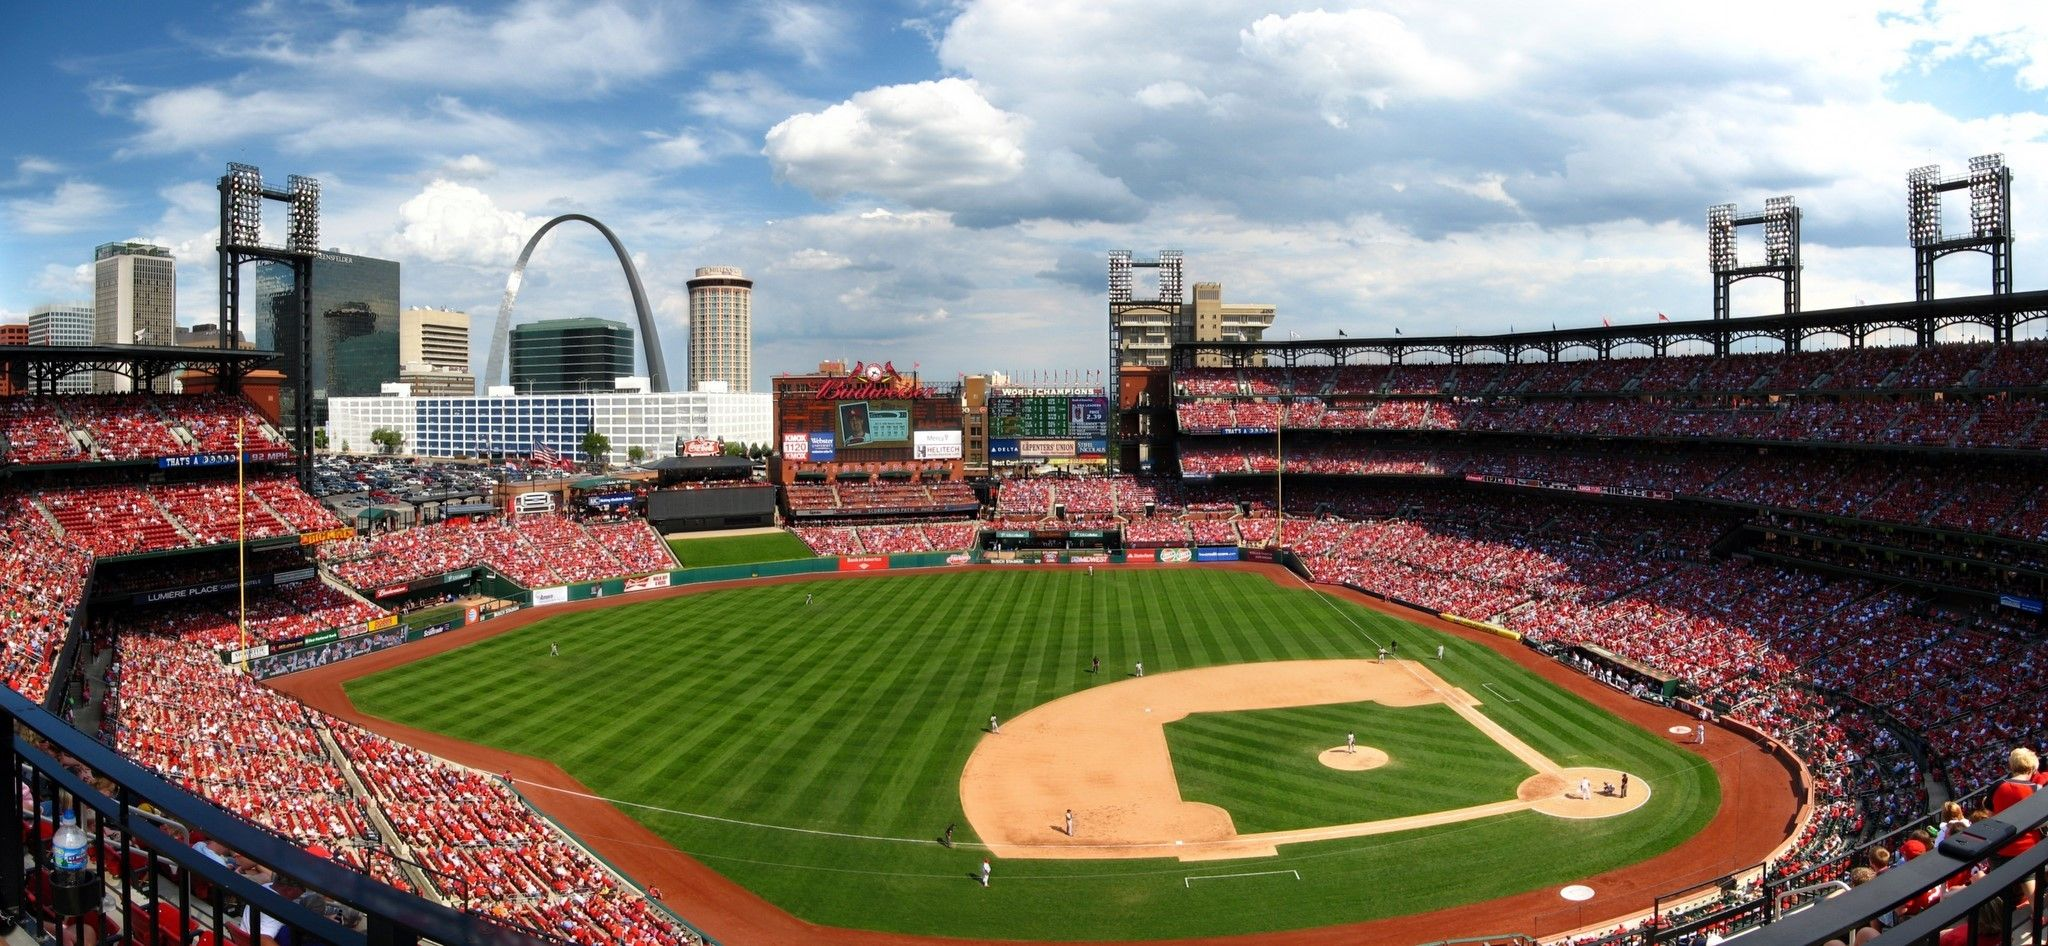 Ranking All 30 Mlb Stadiums Which Ballpark Is The Best Baseball Ballparks Mlb Stadiums Baseball Field Dimensions Mlb